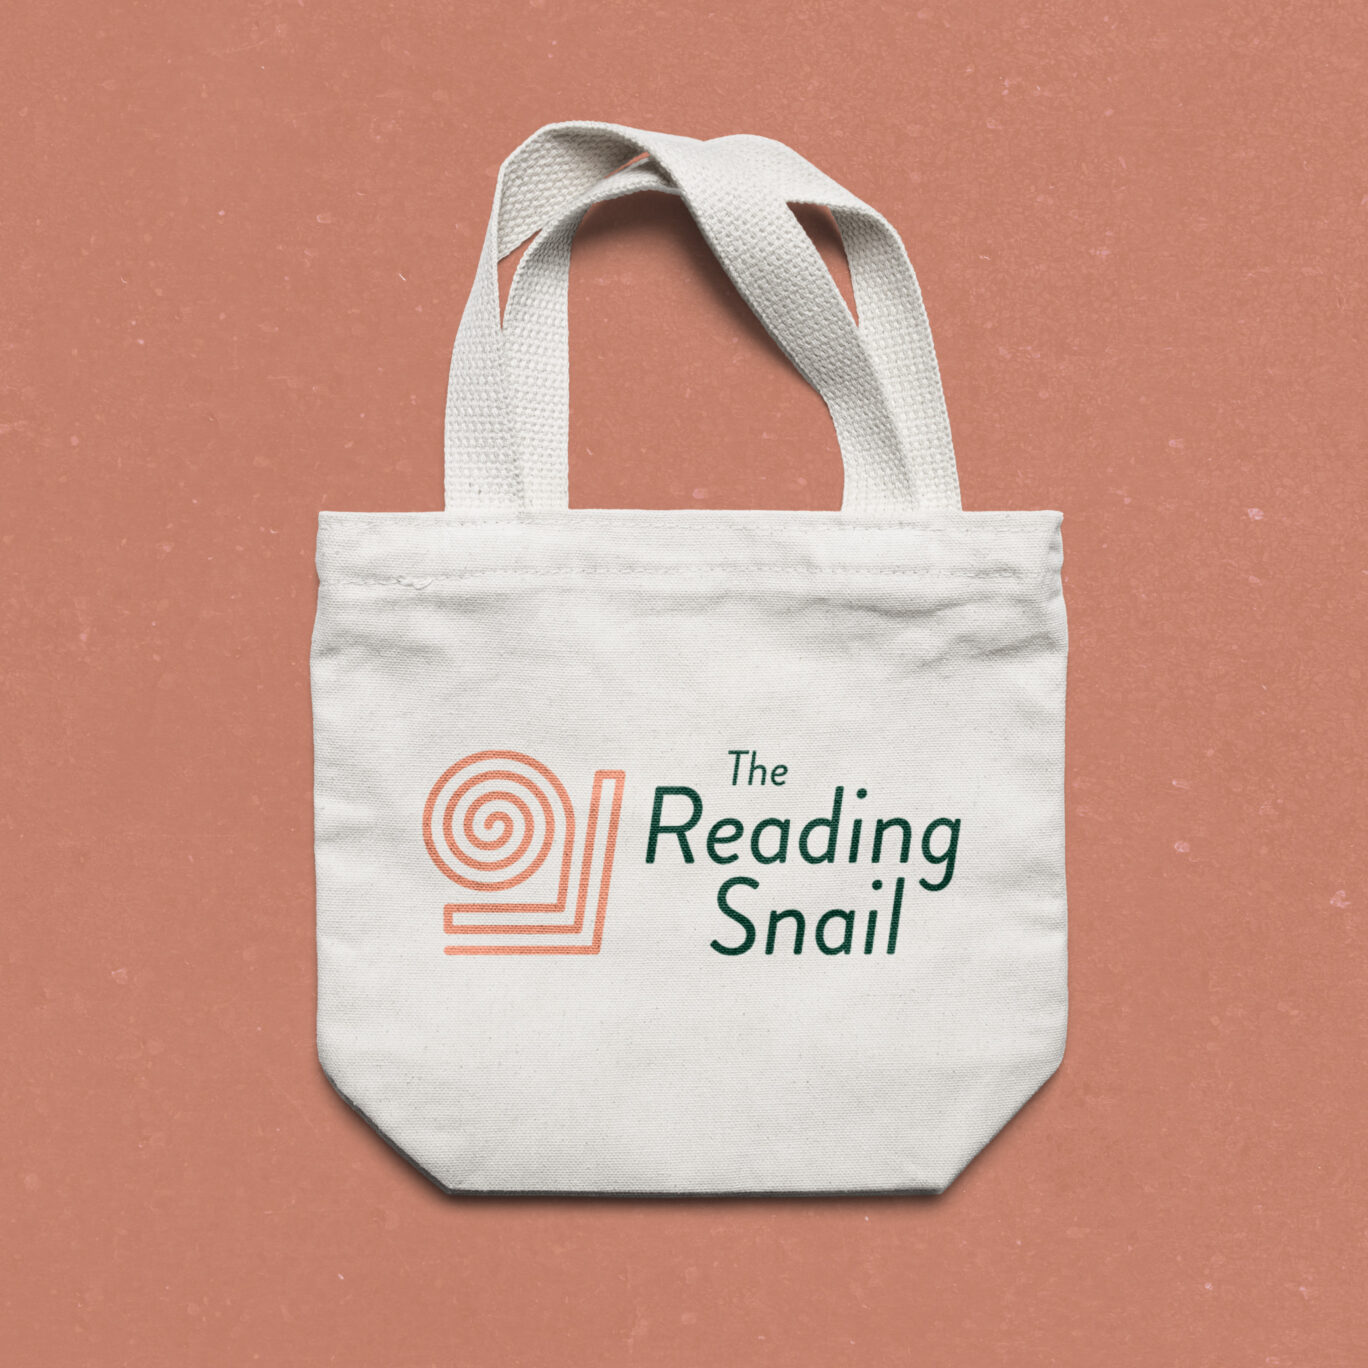 The Reading Snail